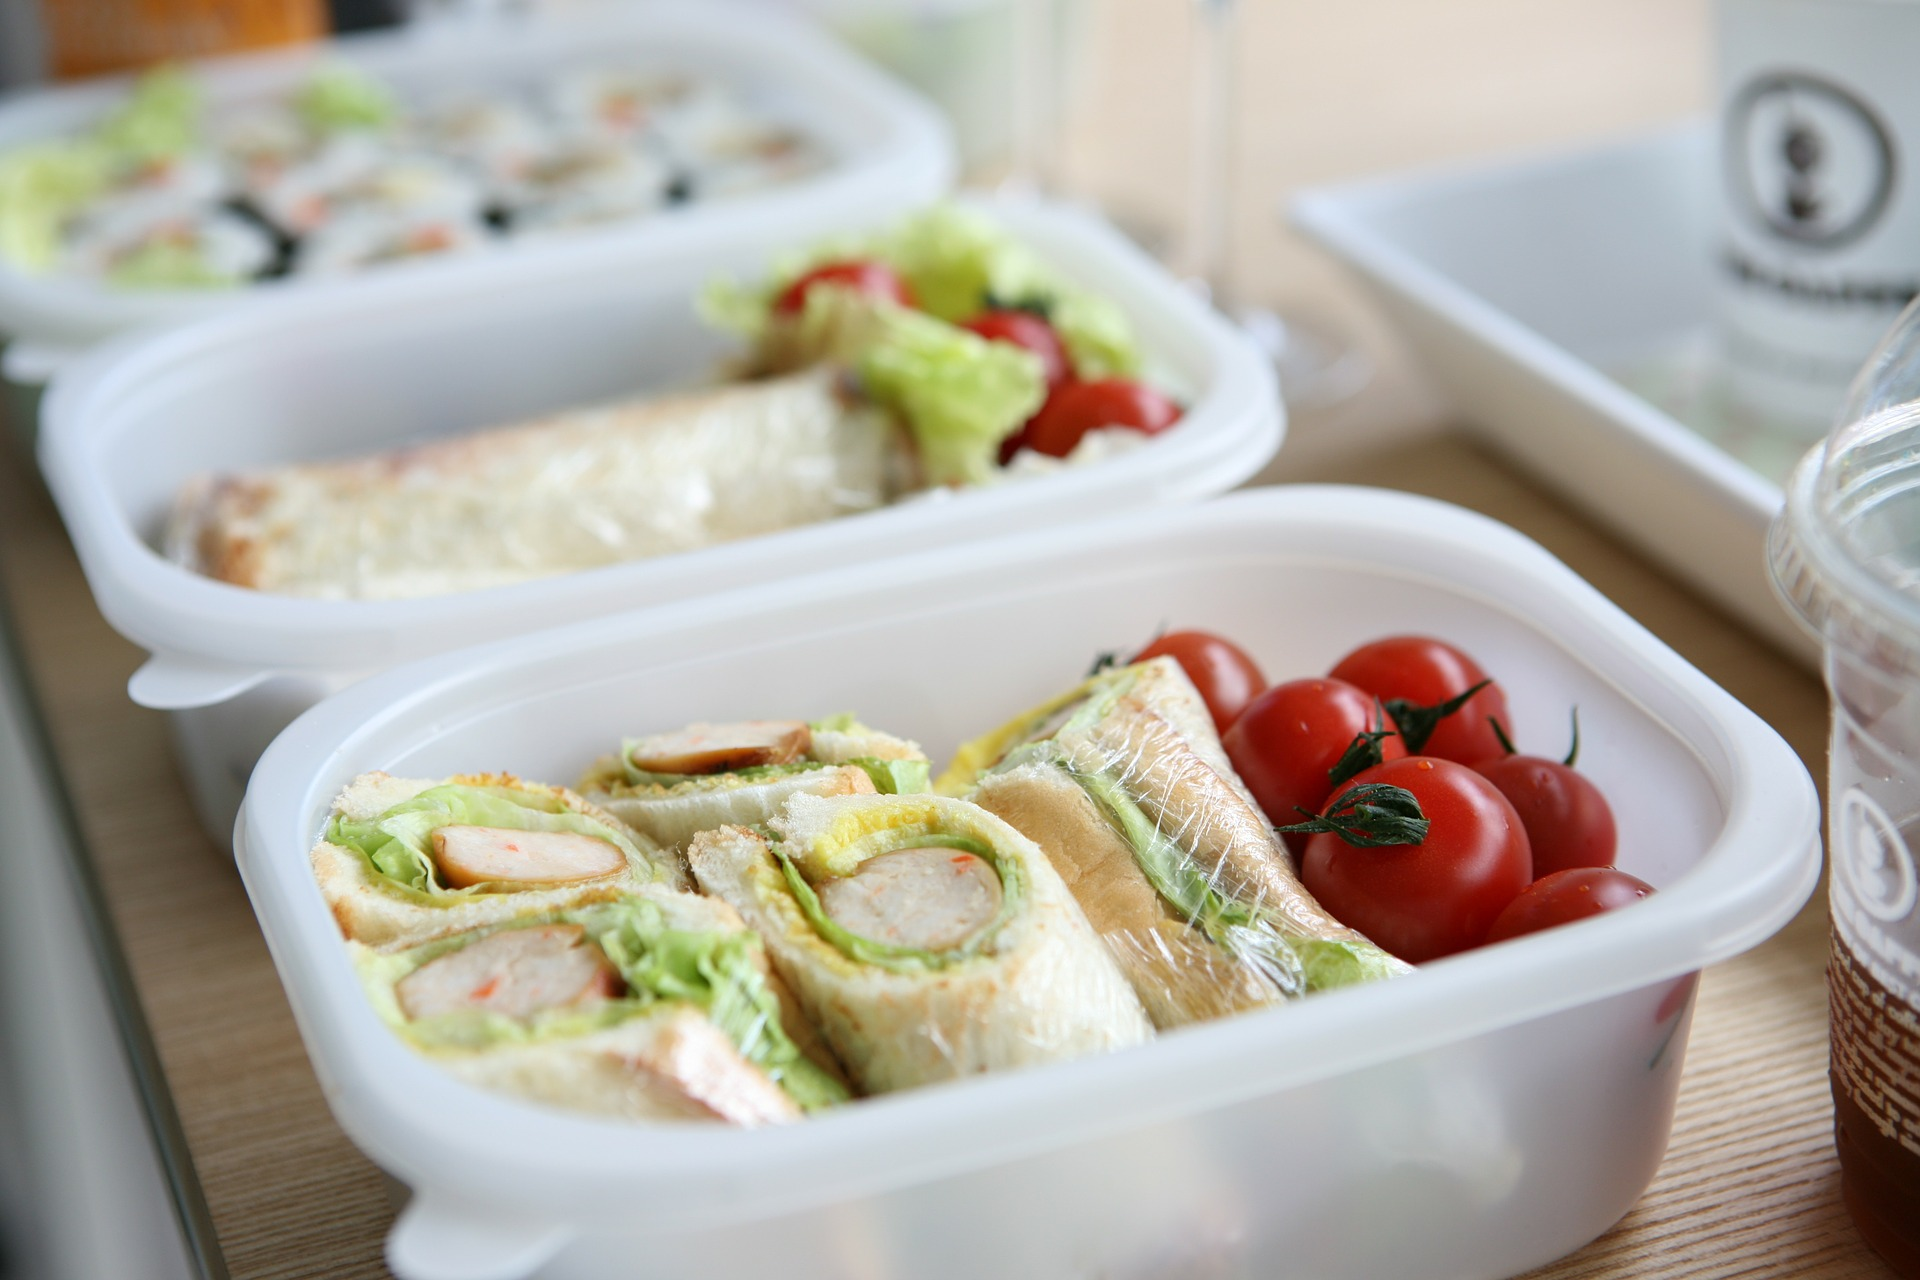 Lunch in containers